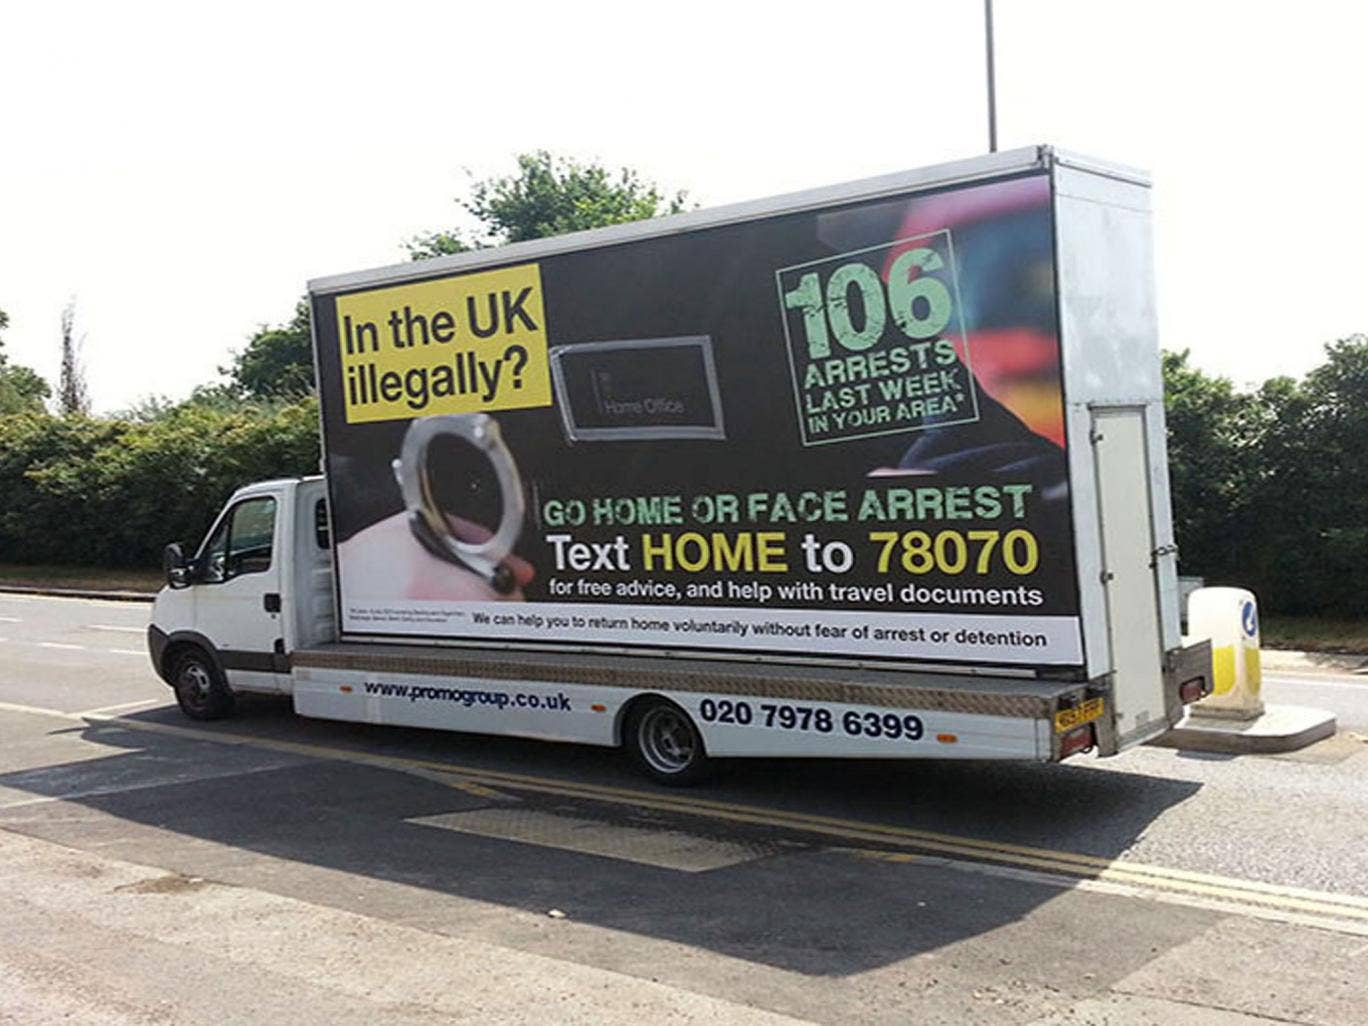 Mark Harper said the Home Office could extend the mobile advan posters nationwide